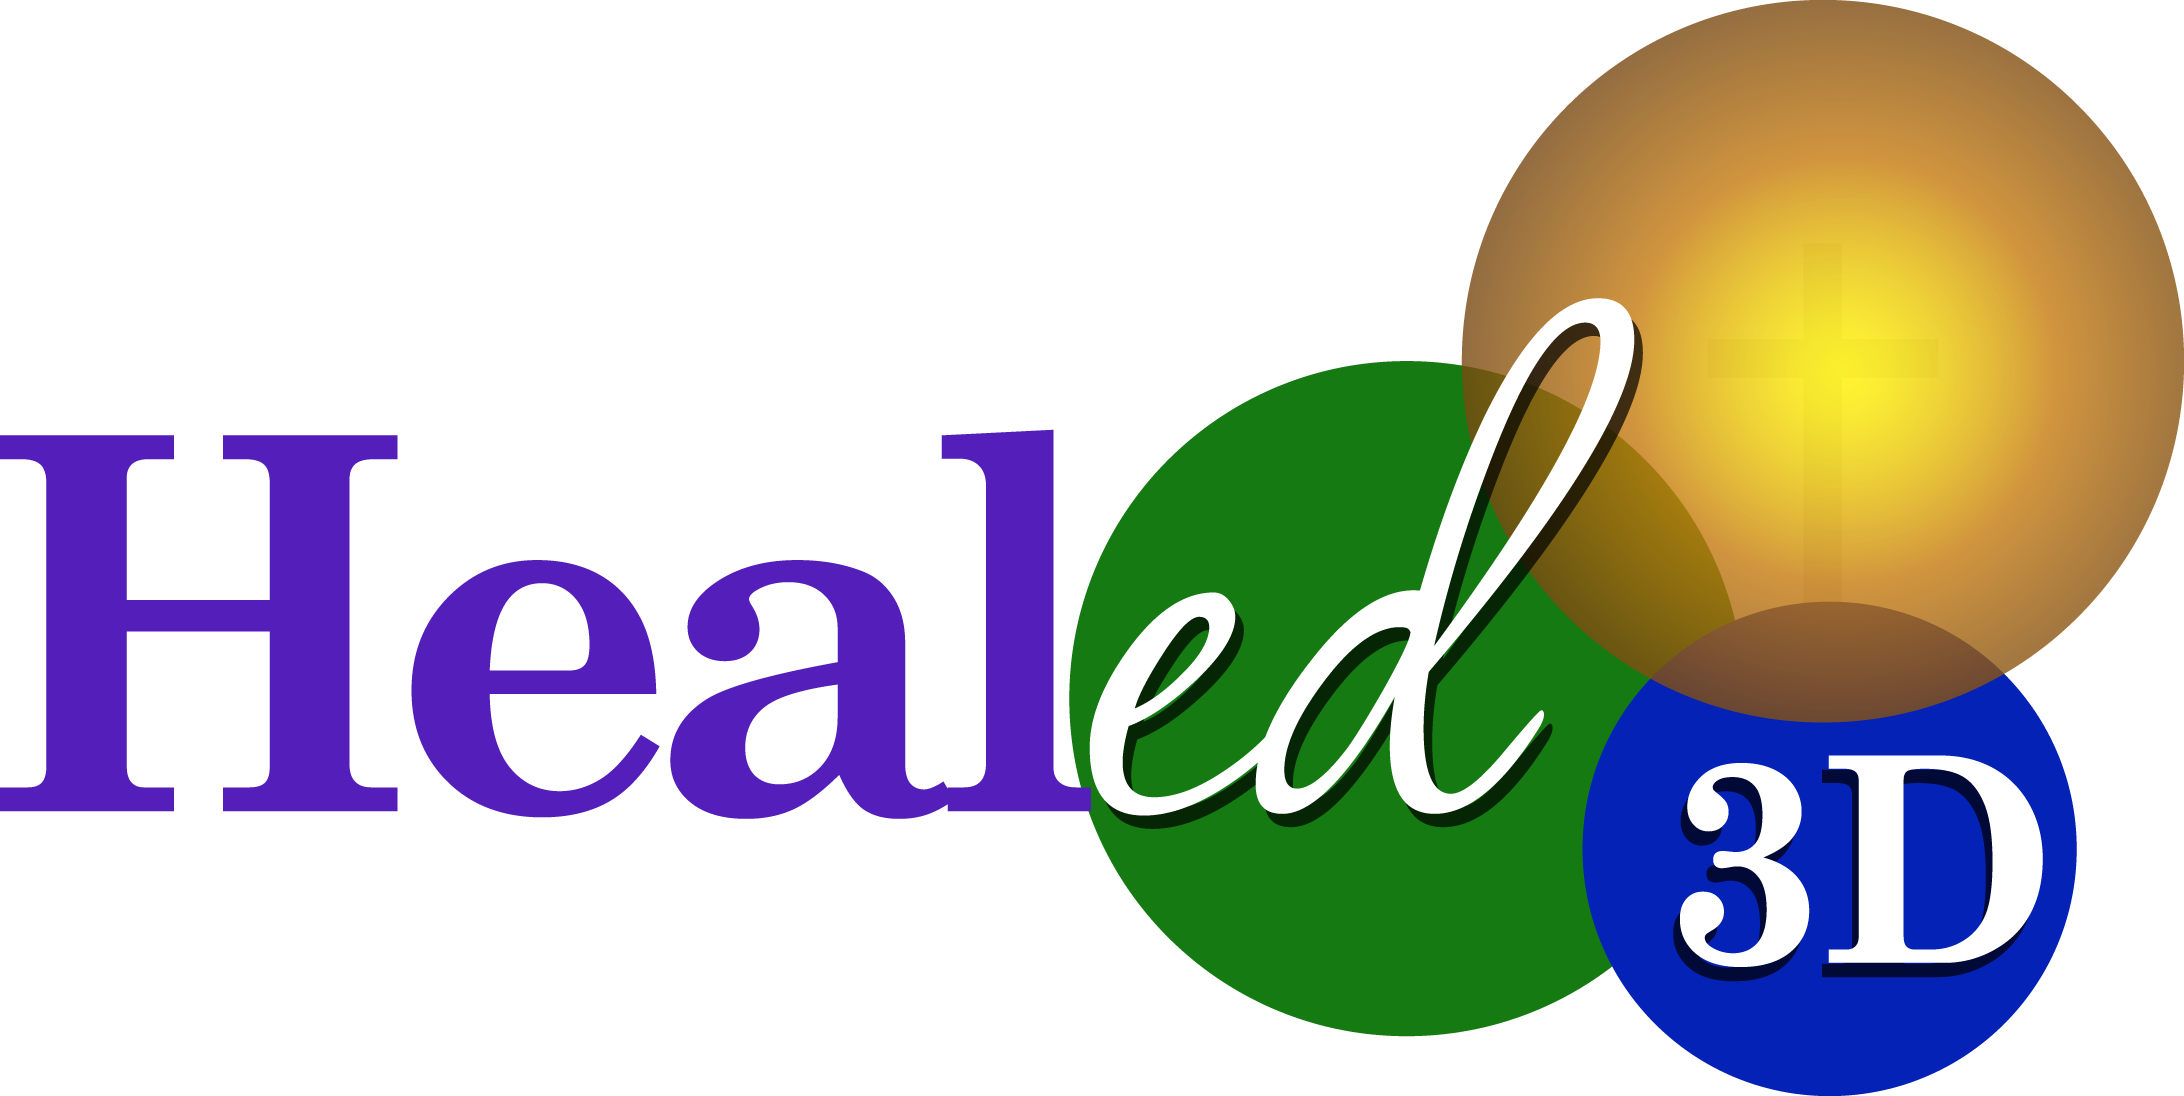 Healed3D - Strengthening Caregivers Transforms Communities